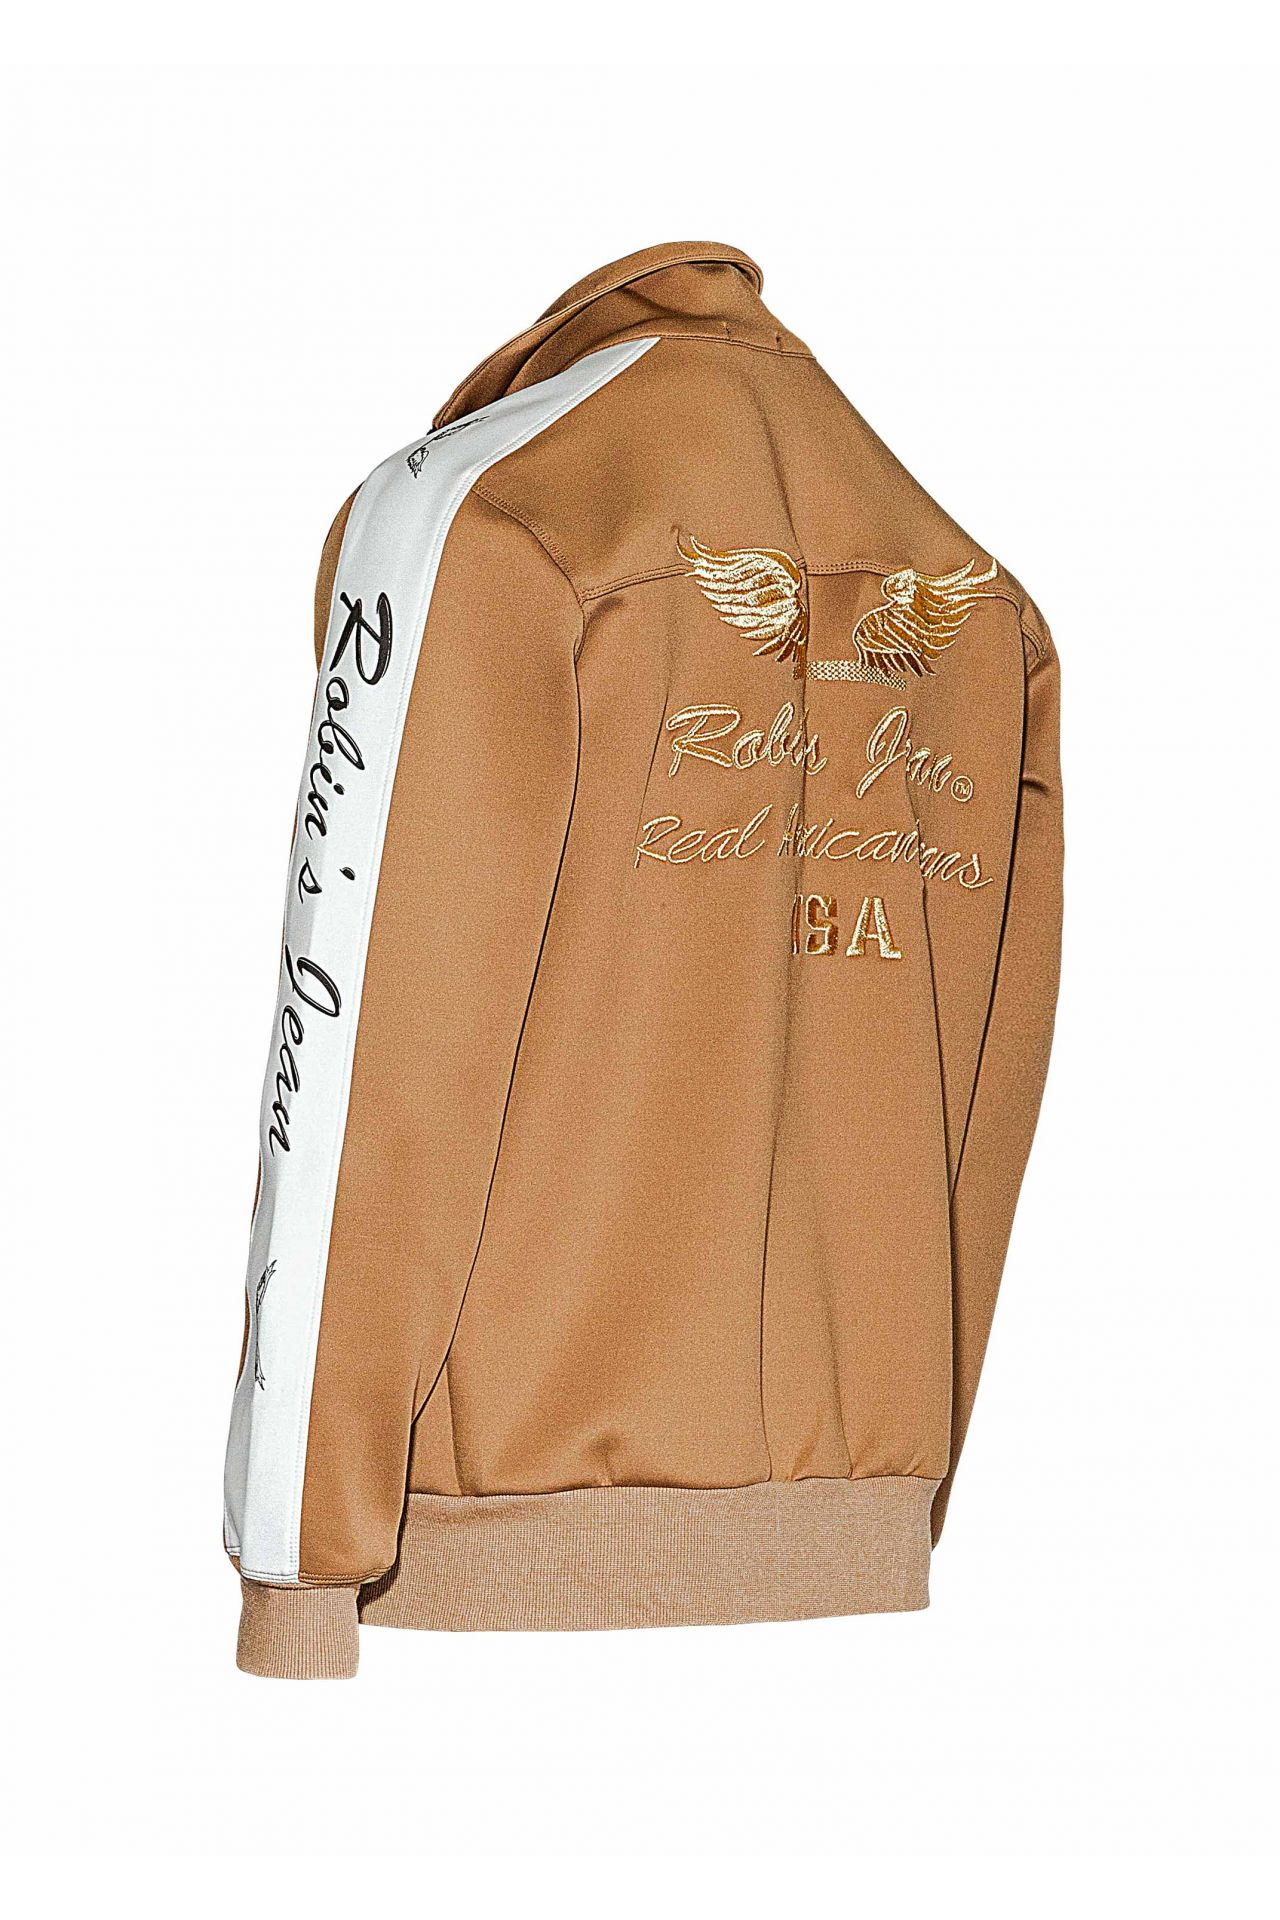 ROBIN TEAM TRACK JACKET W PATCHES IN KHAKI